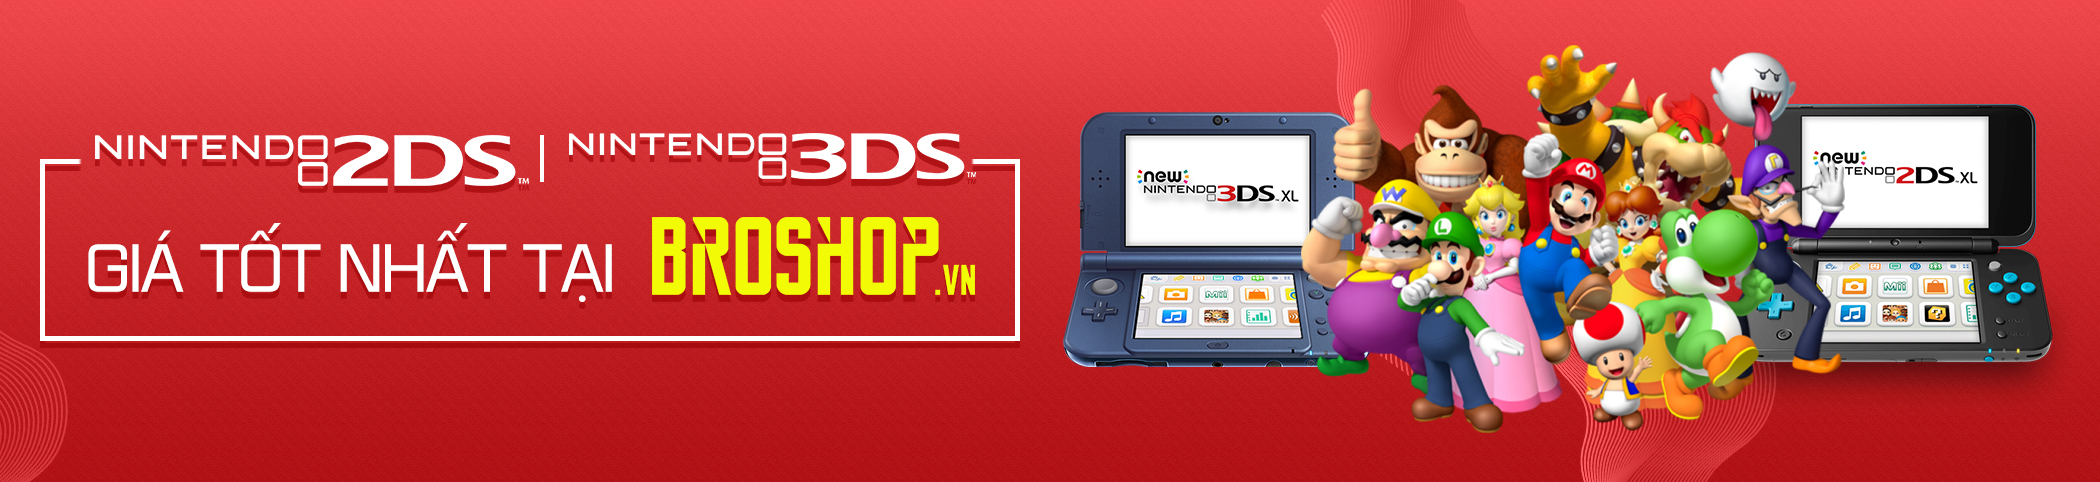 Nintendo 3DS 2DS mới